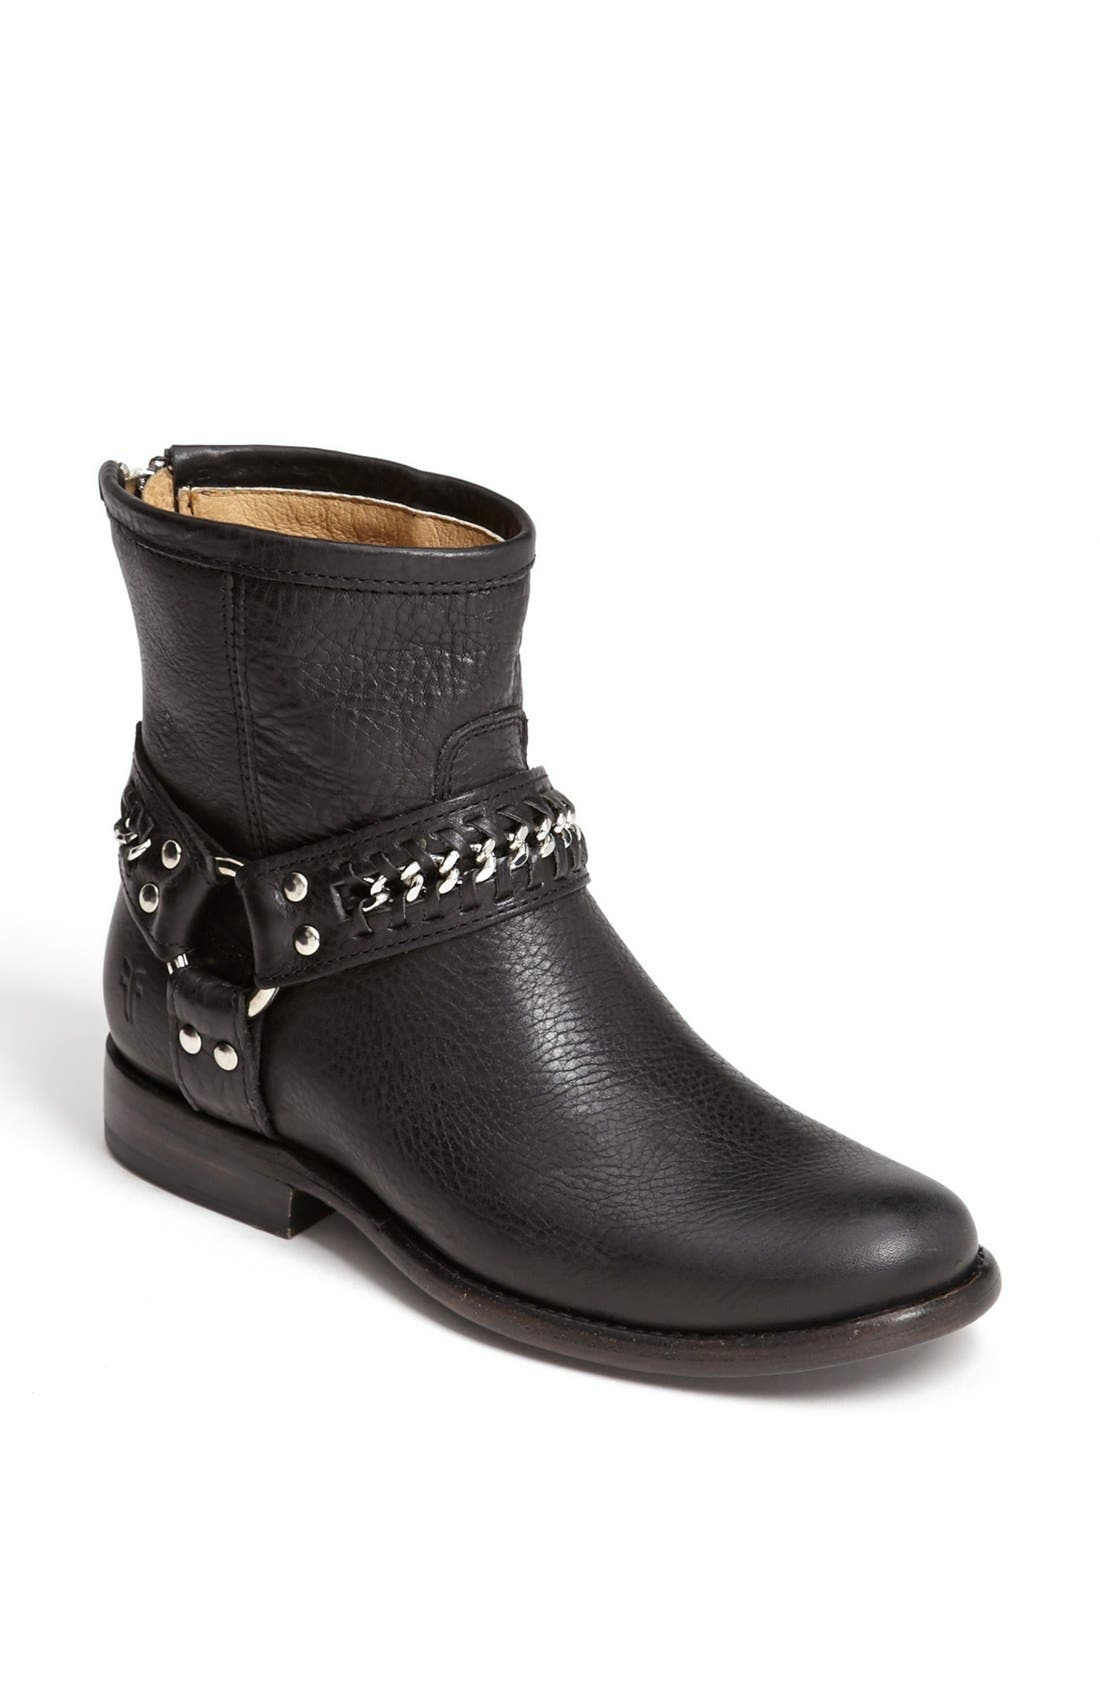 Alternate Image 1 Selected - Frye 'Phillip Chain' Bootie